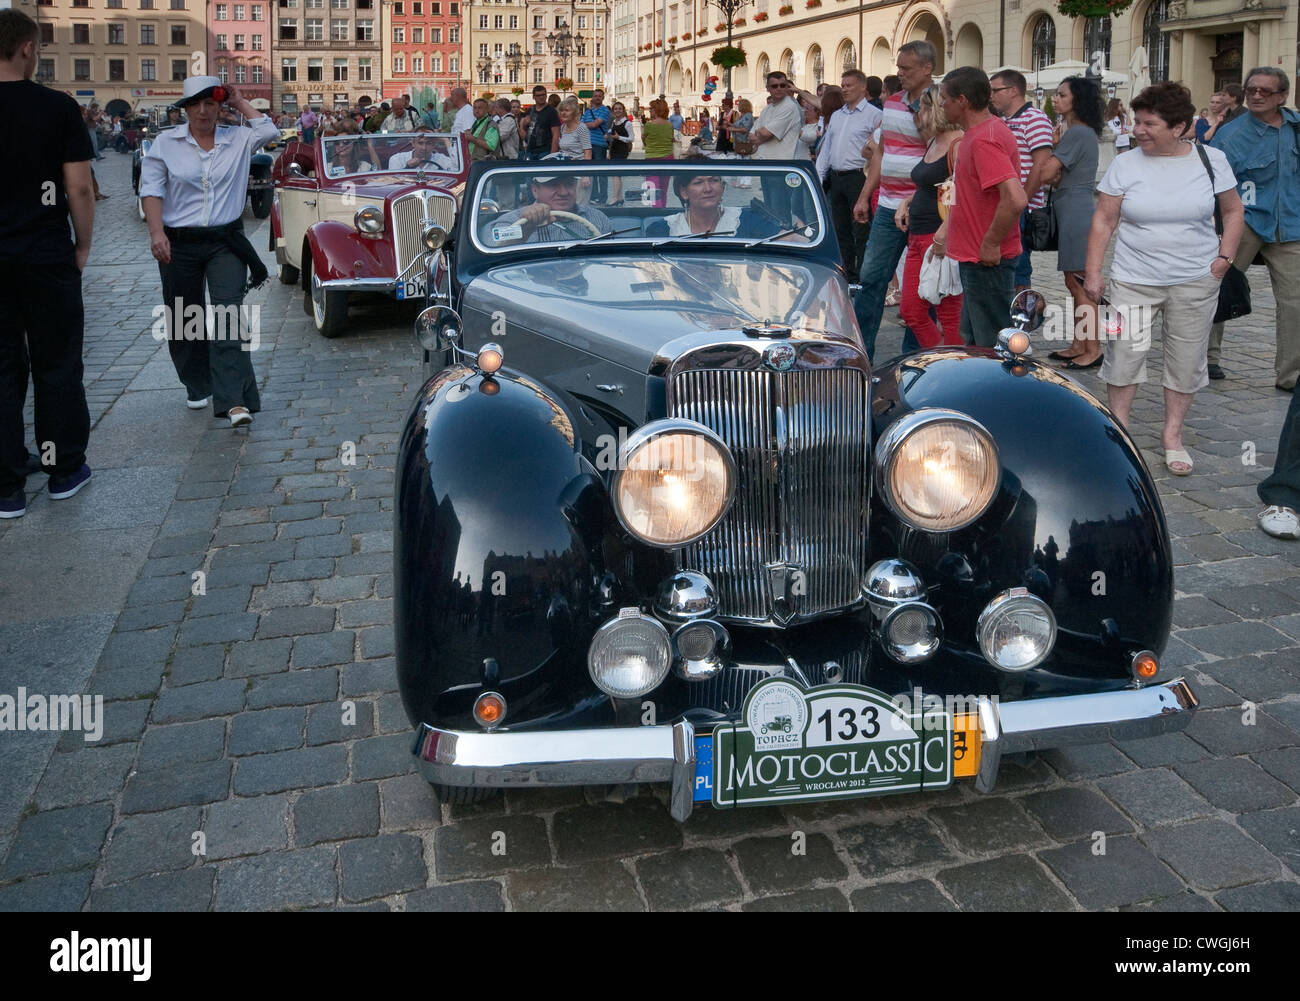 1949 Triumph 2000 Roadster at Motoclassic car show at Rynek (Market Square) in Wroclaw, Lower Silesia, Poland - Stock Image